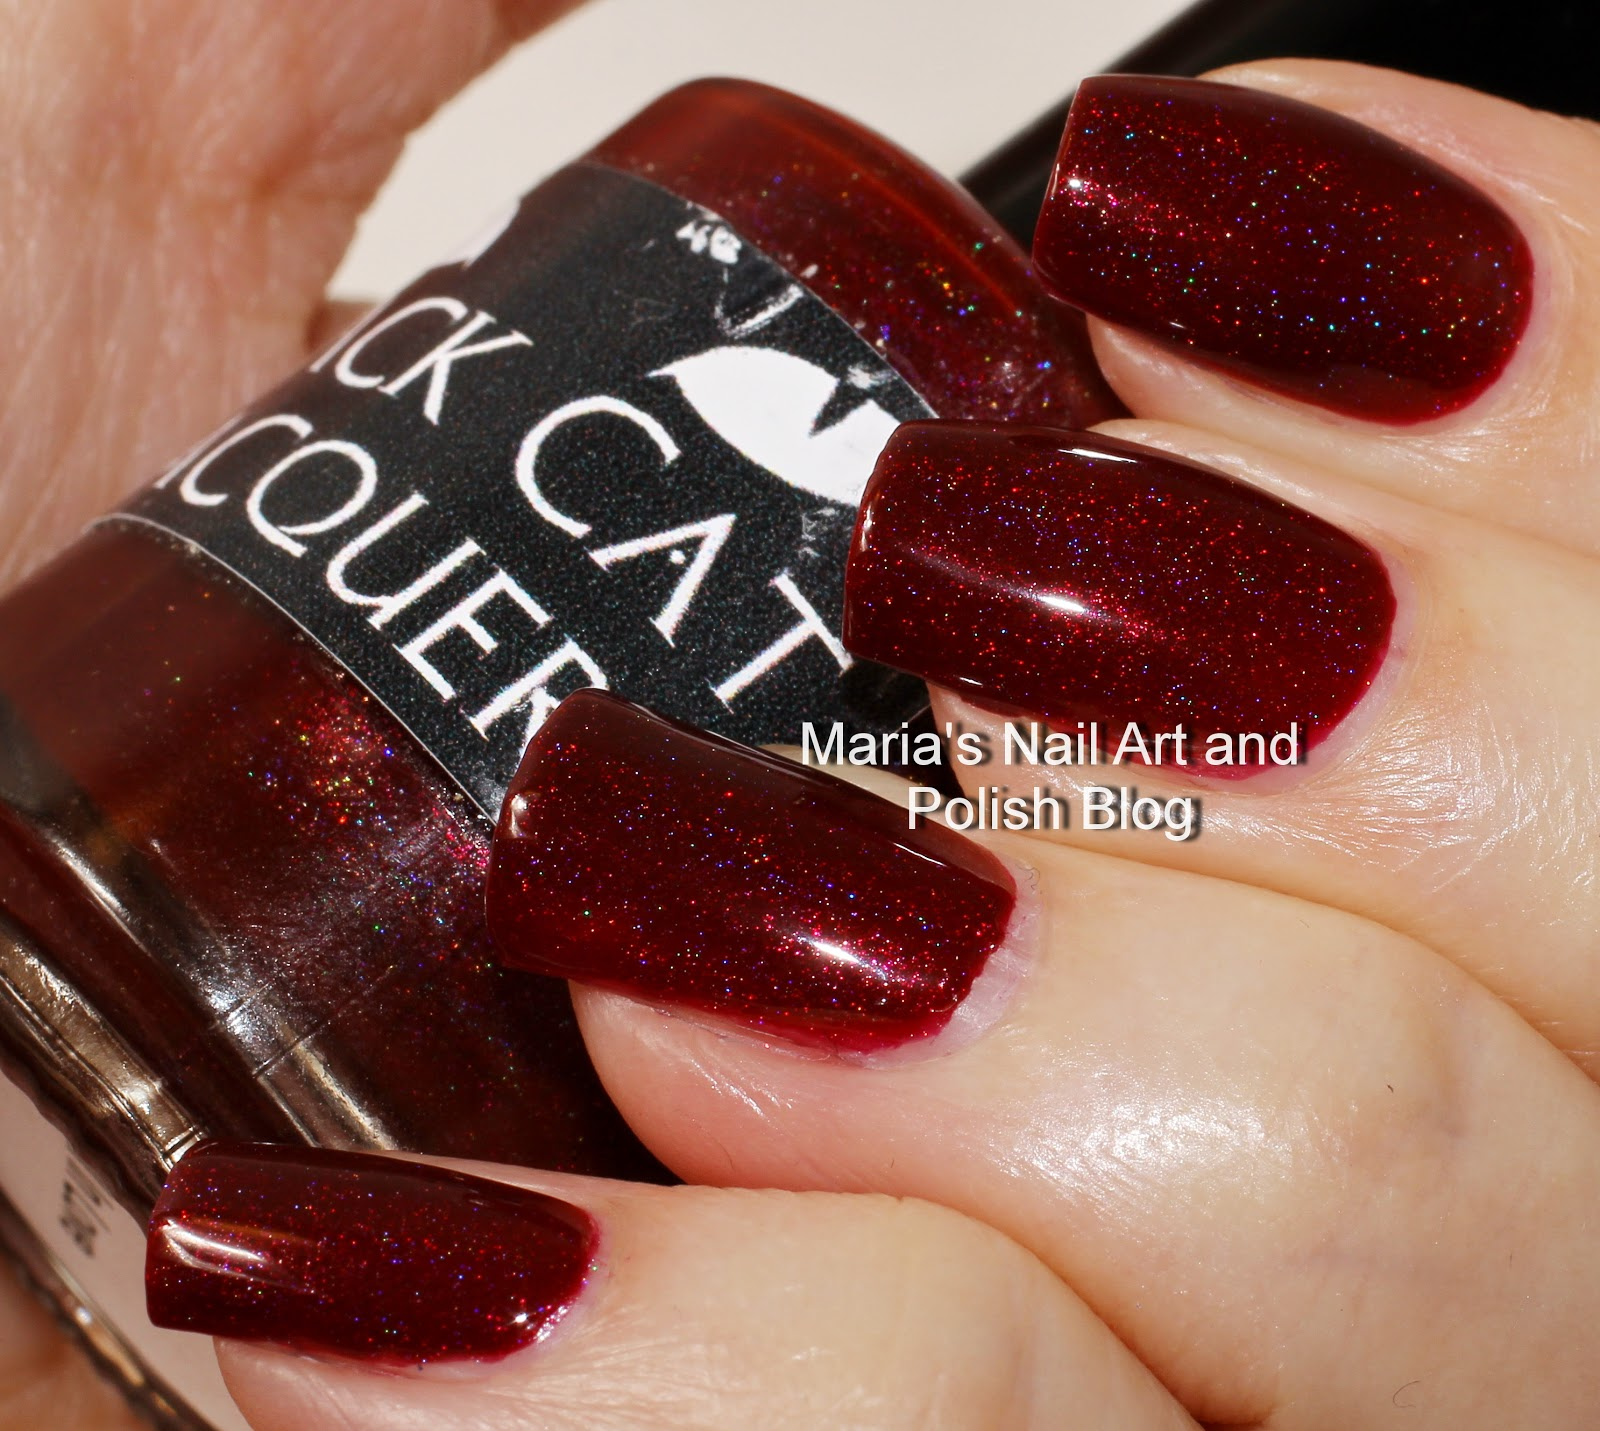 Marias Nail Art And Polish Blog Flushed With Stripes And: Marias Nail Art And Polish Blog: Black Cat Lacquer Fall In